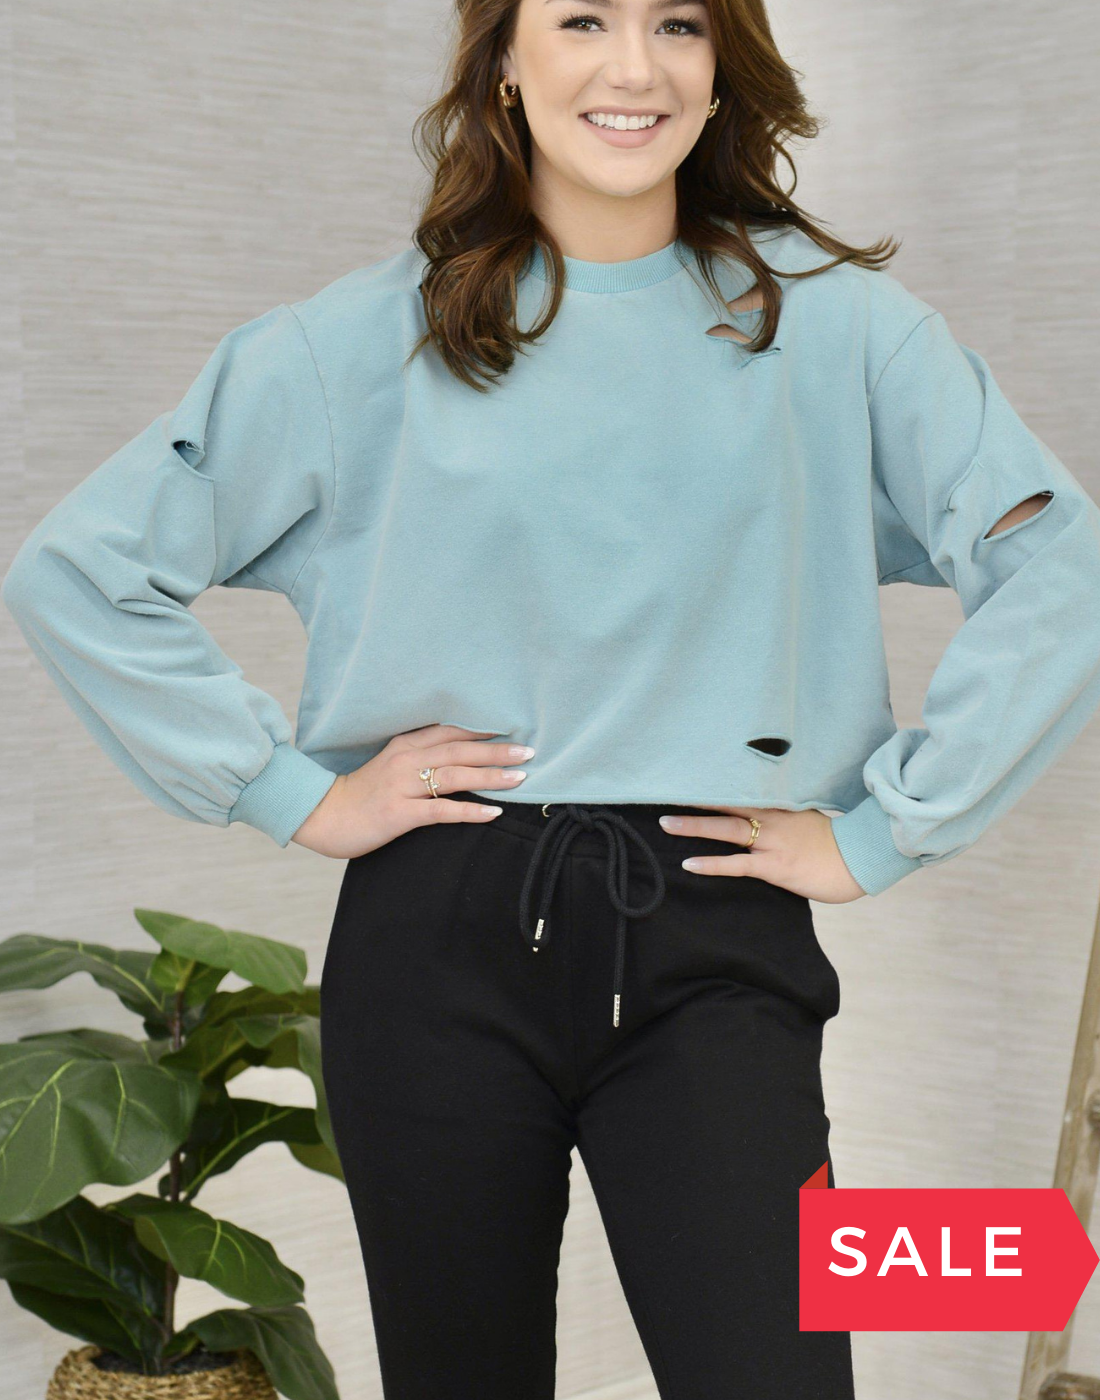 SALE: TOASTY AND COZY TOP - ORIG $49